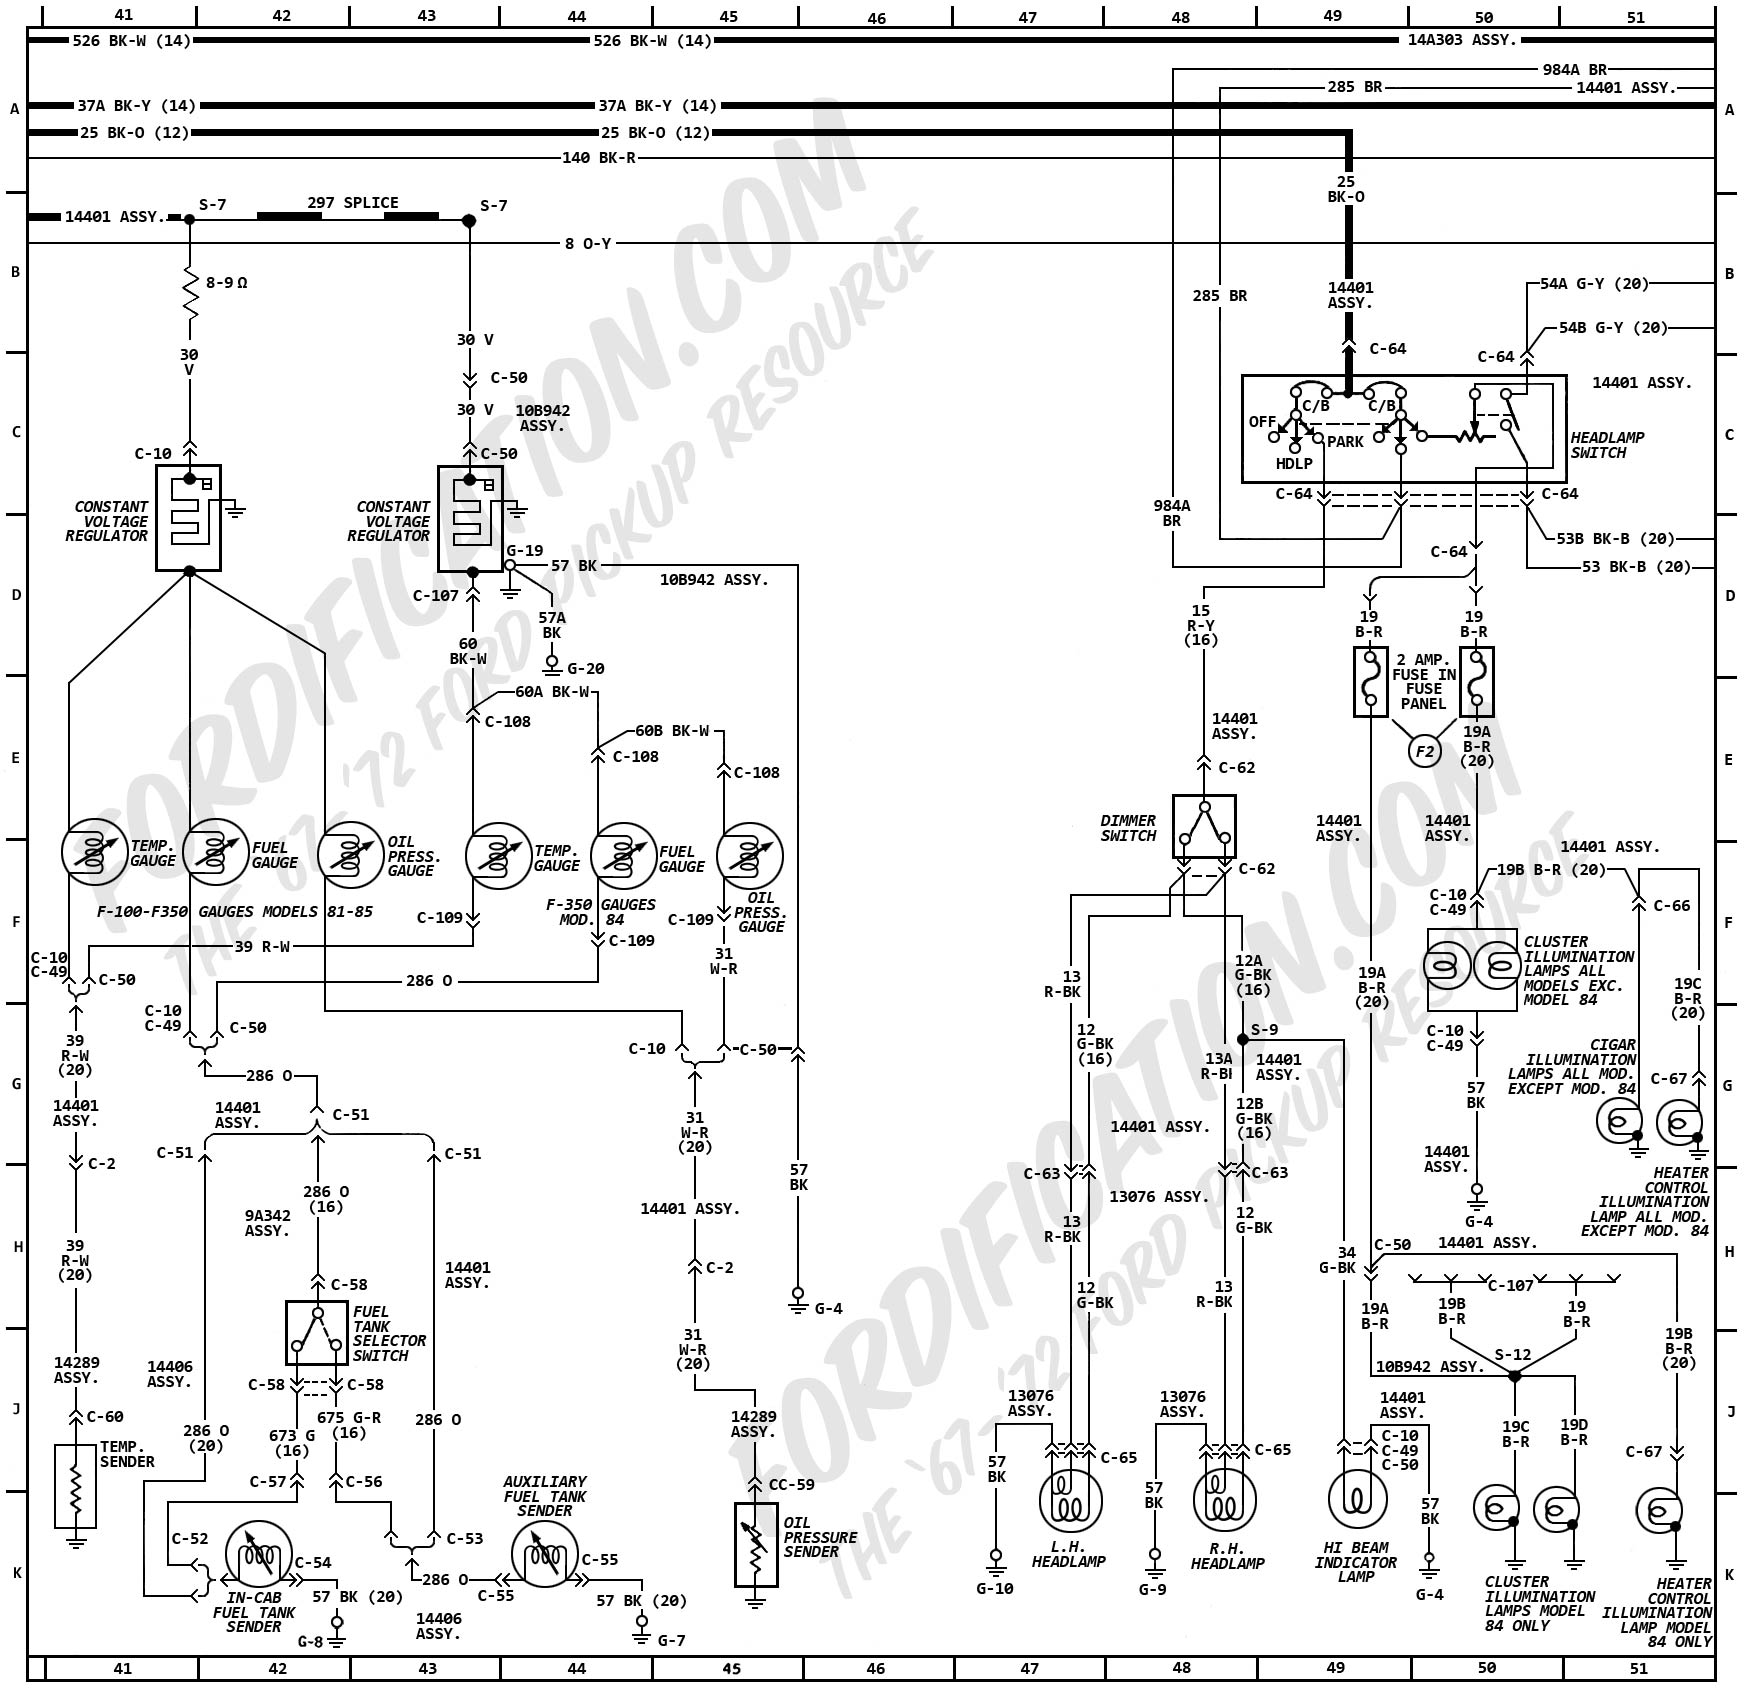 1191 Ford L8000 Wiring Diagram Best Wiring Library